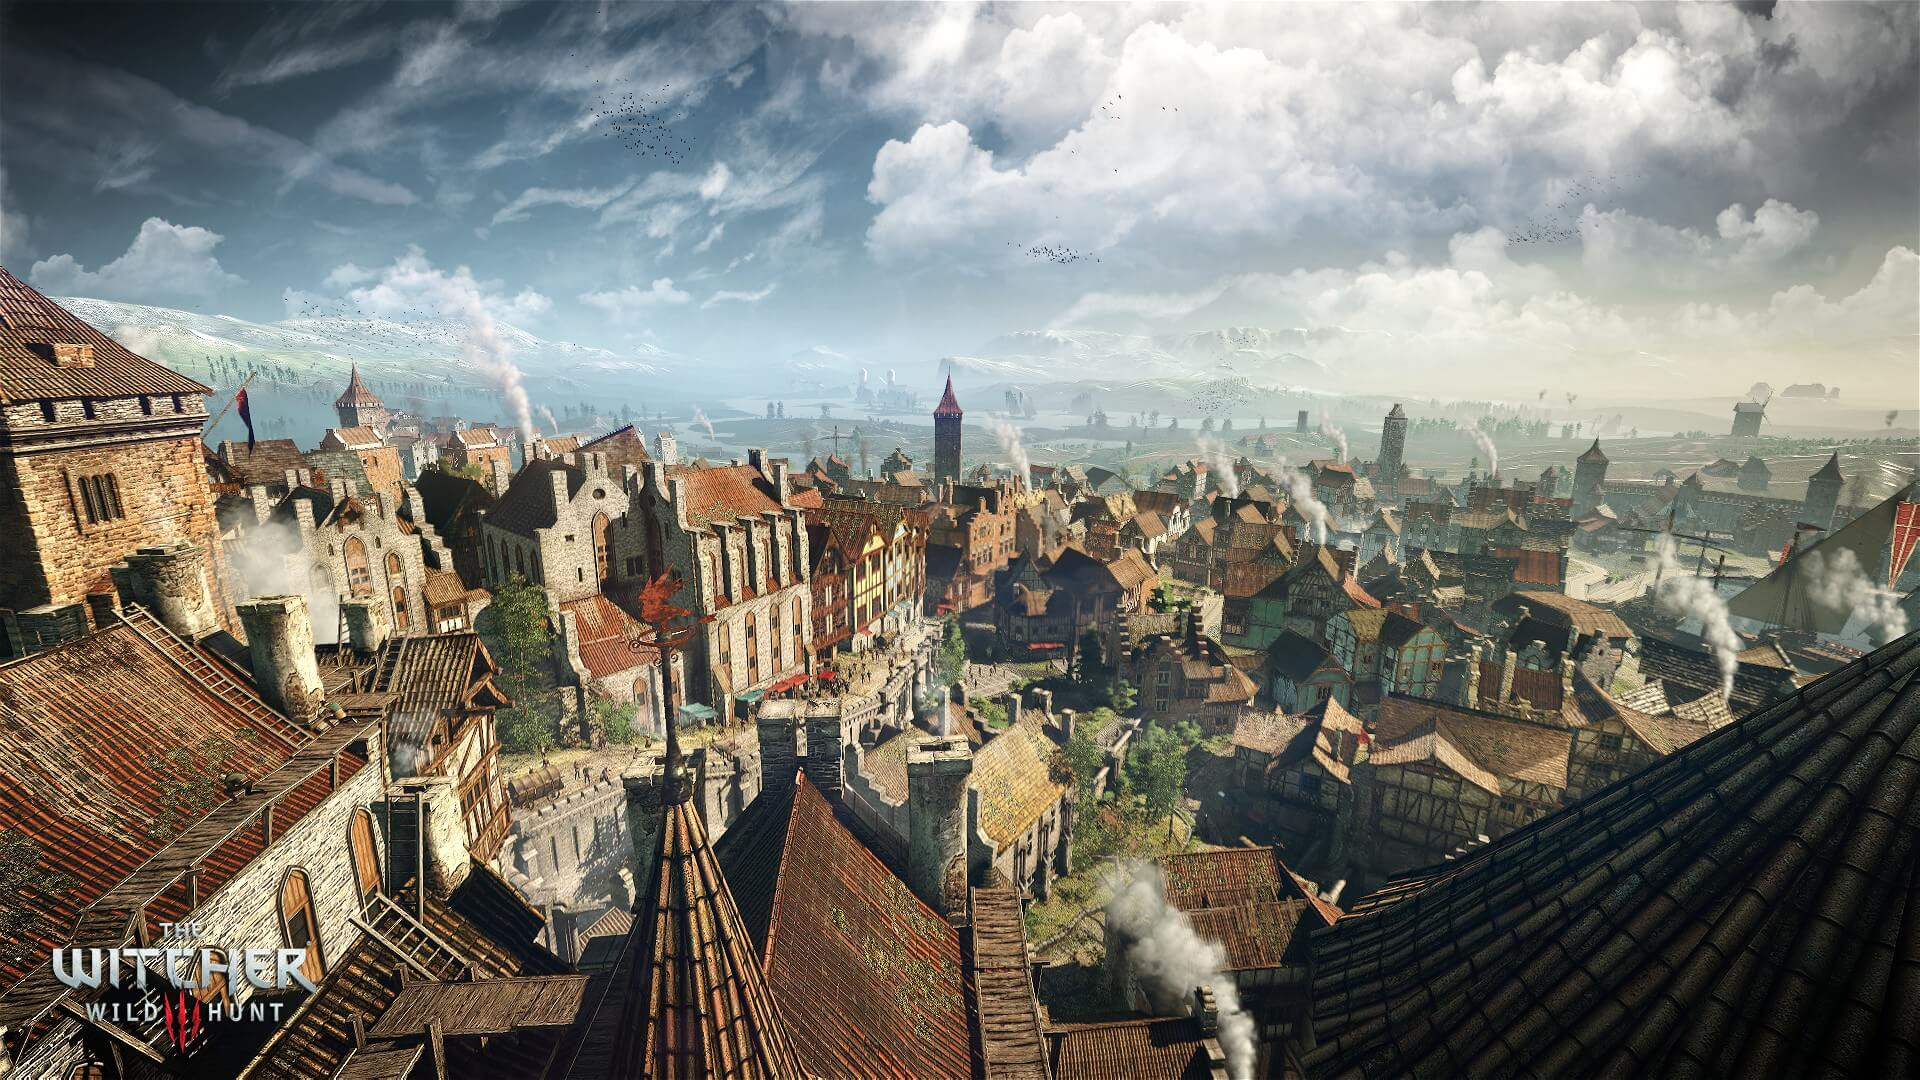 The Witcher 3: Wild Hunt City Screenshot